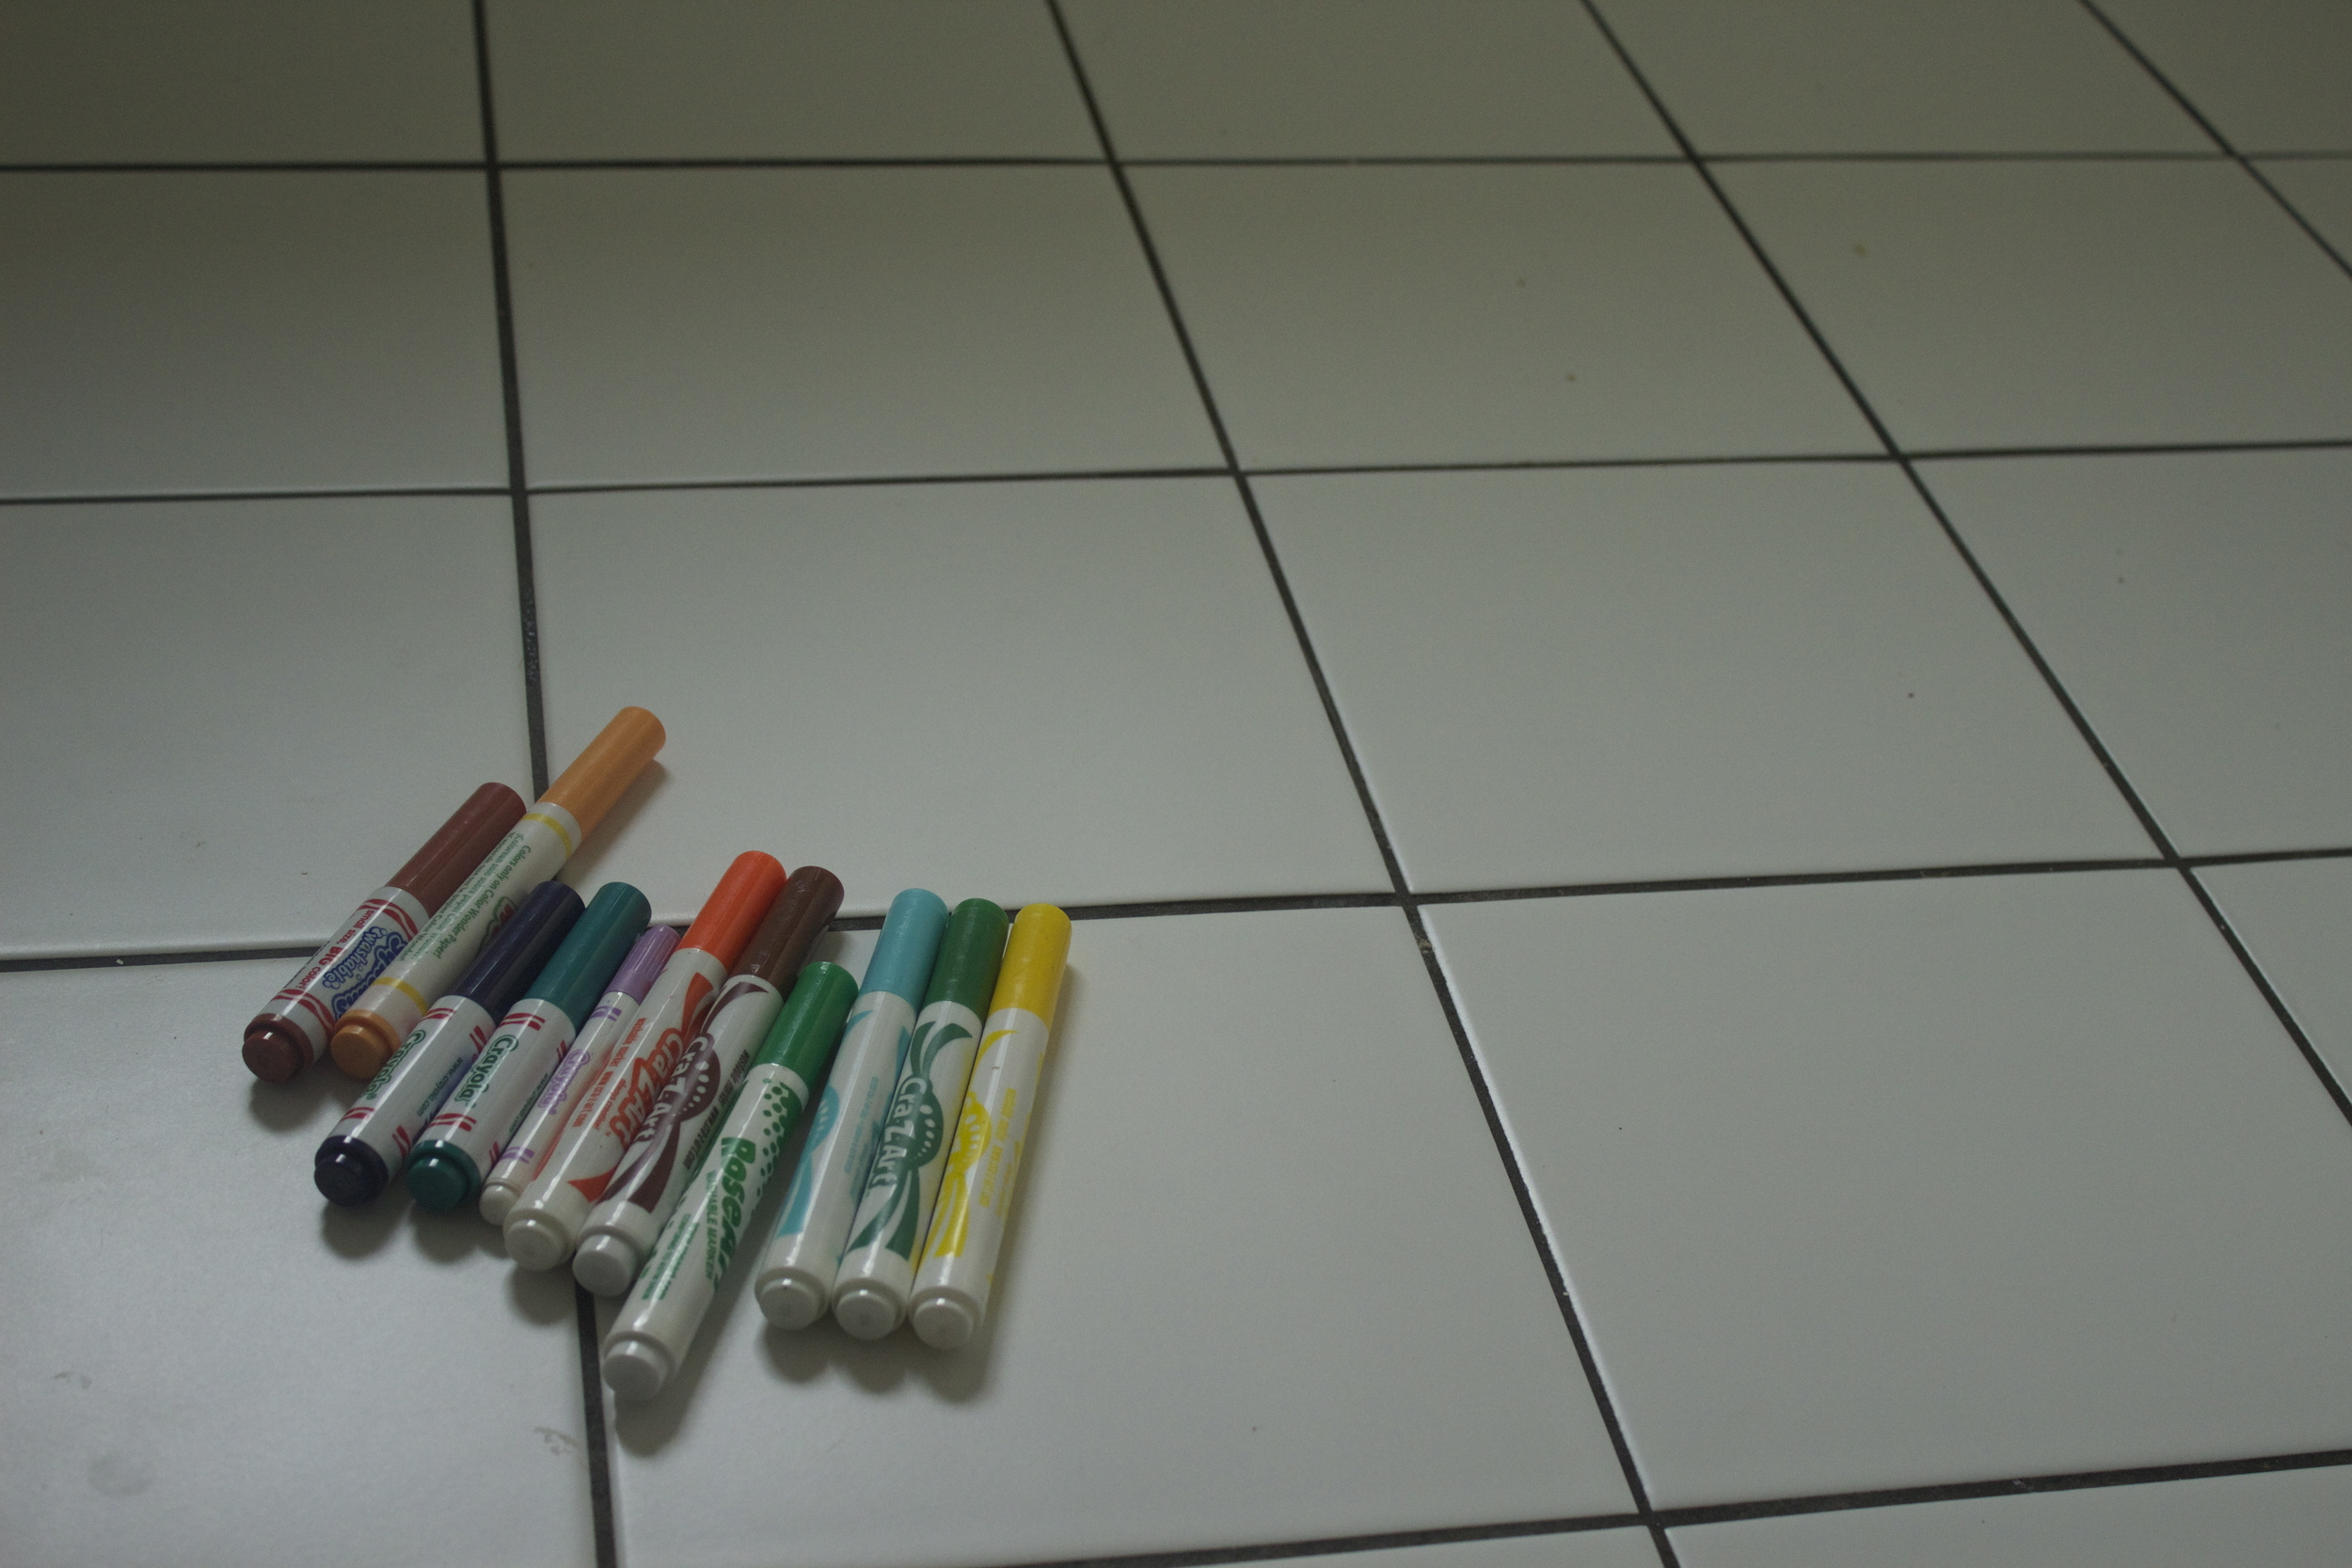 All you need washable markers and tile floor.